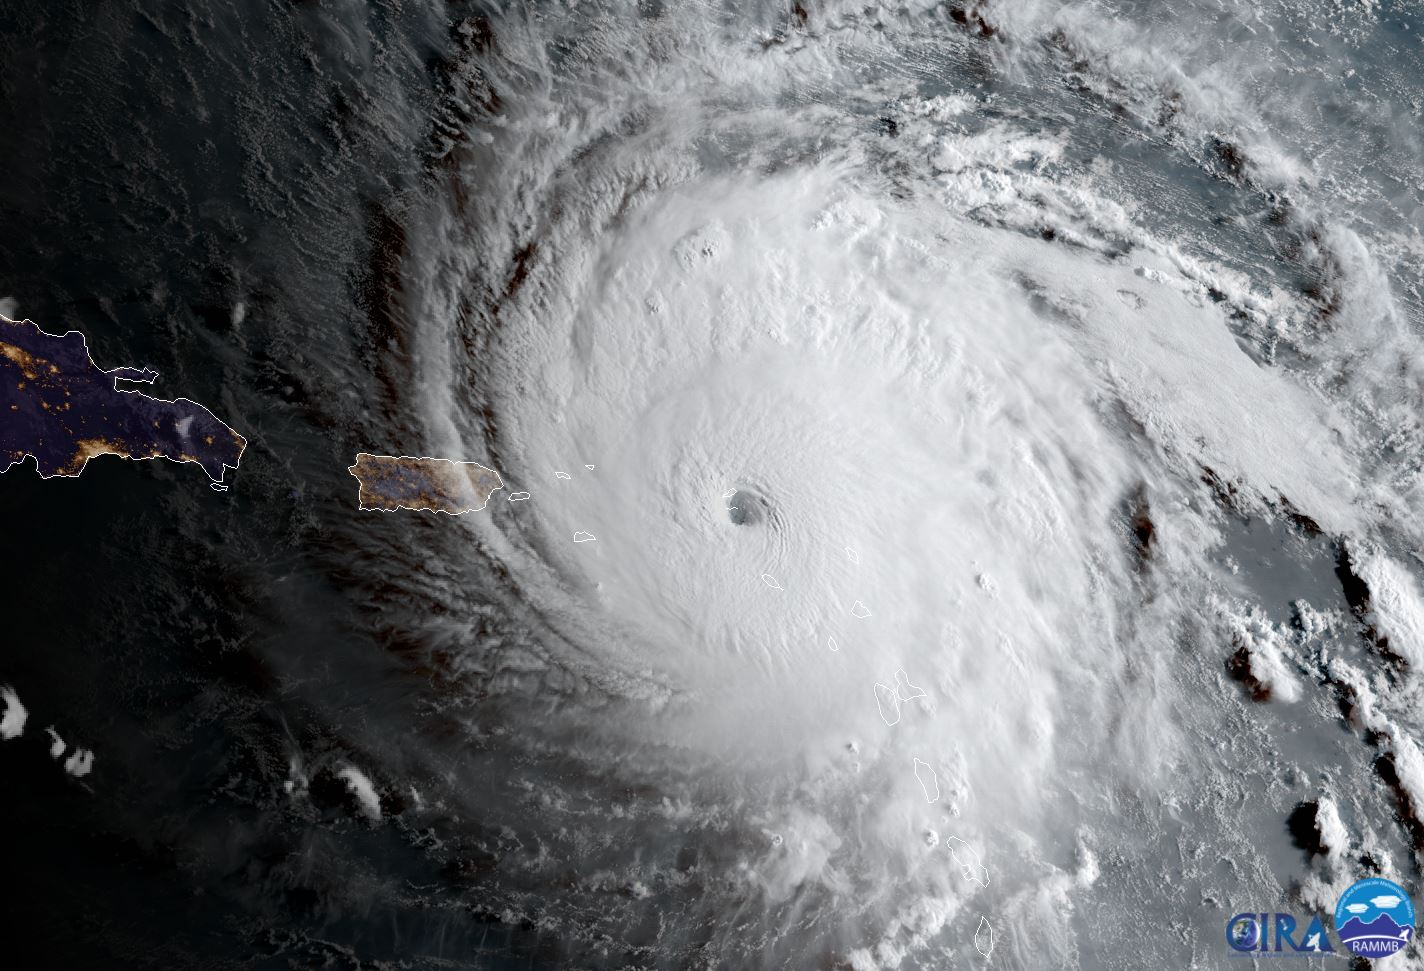 FCC Activates DIRS In Response To Hurricane Florence